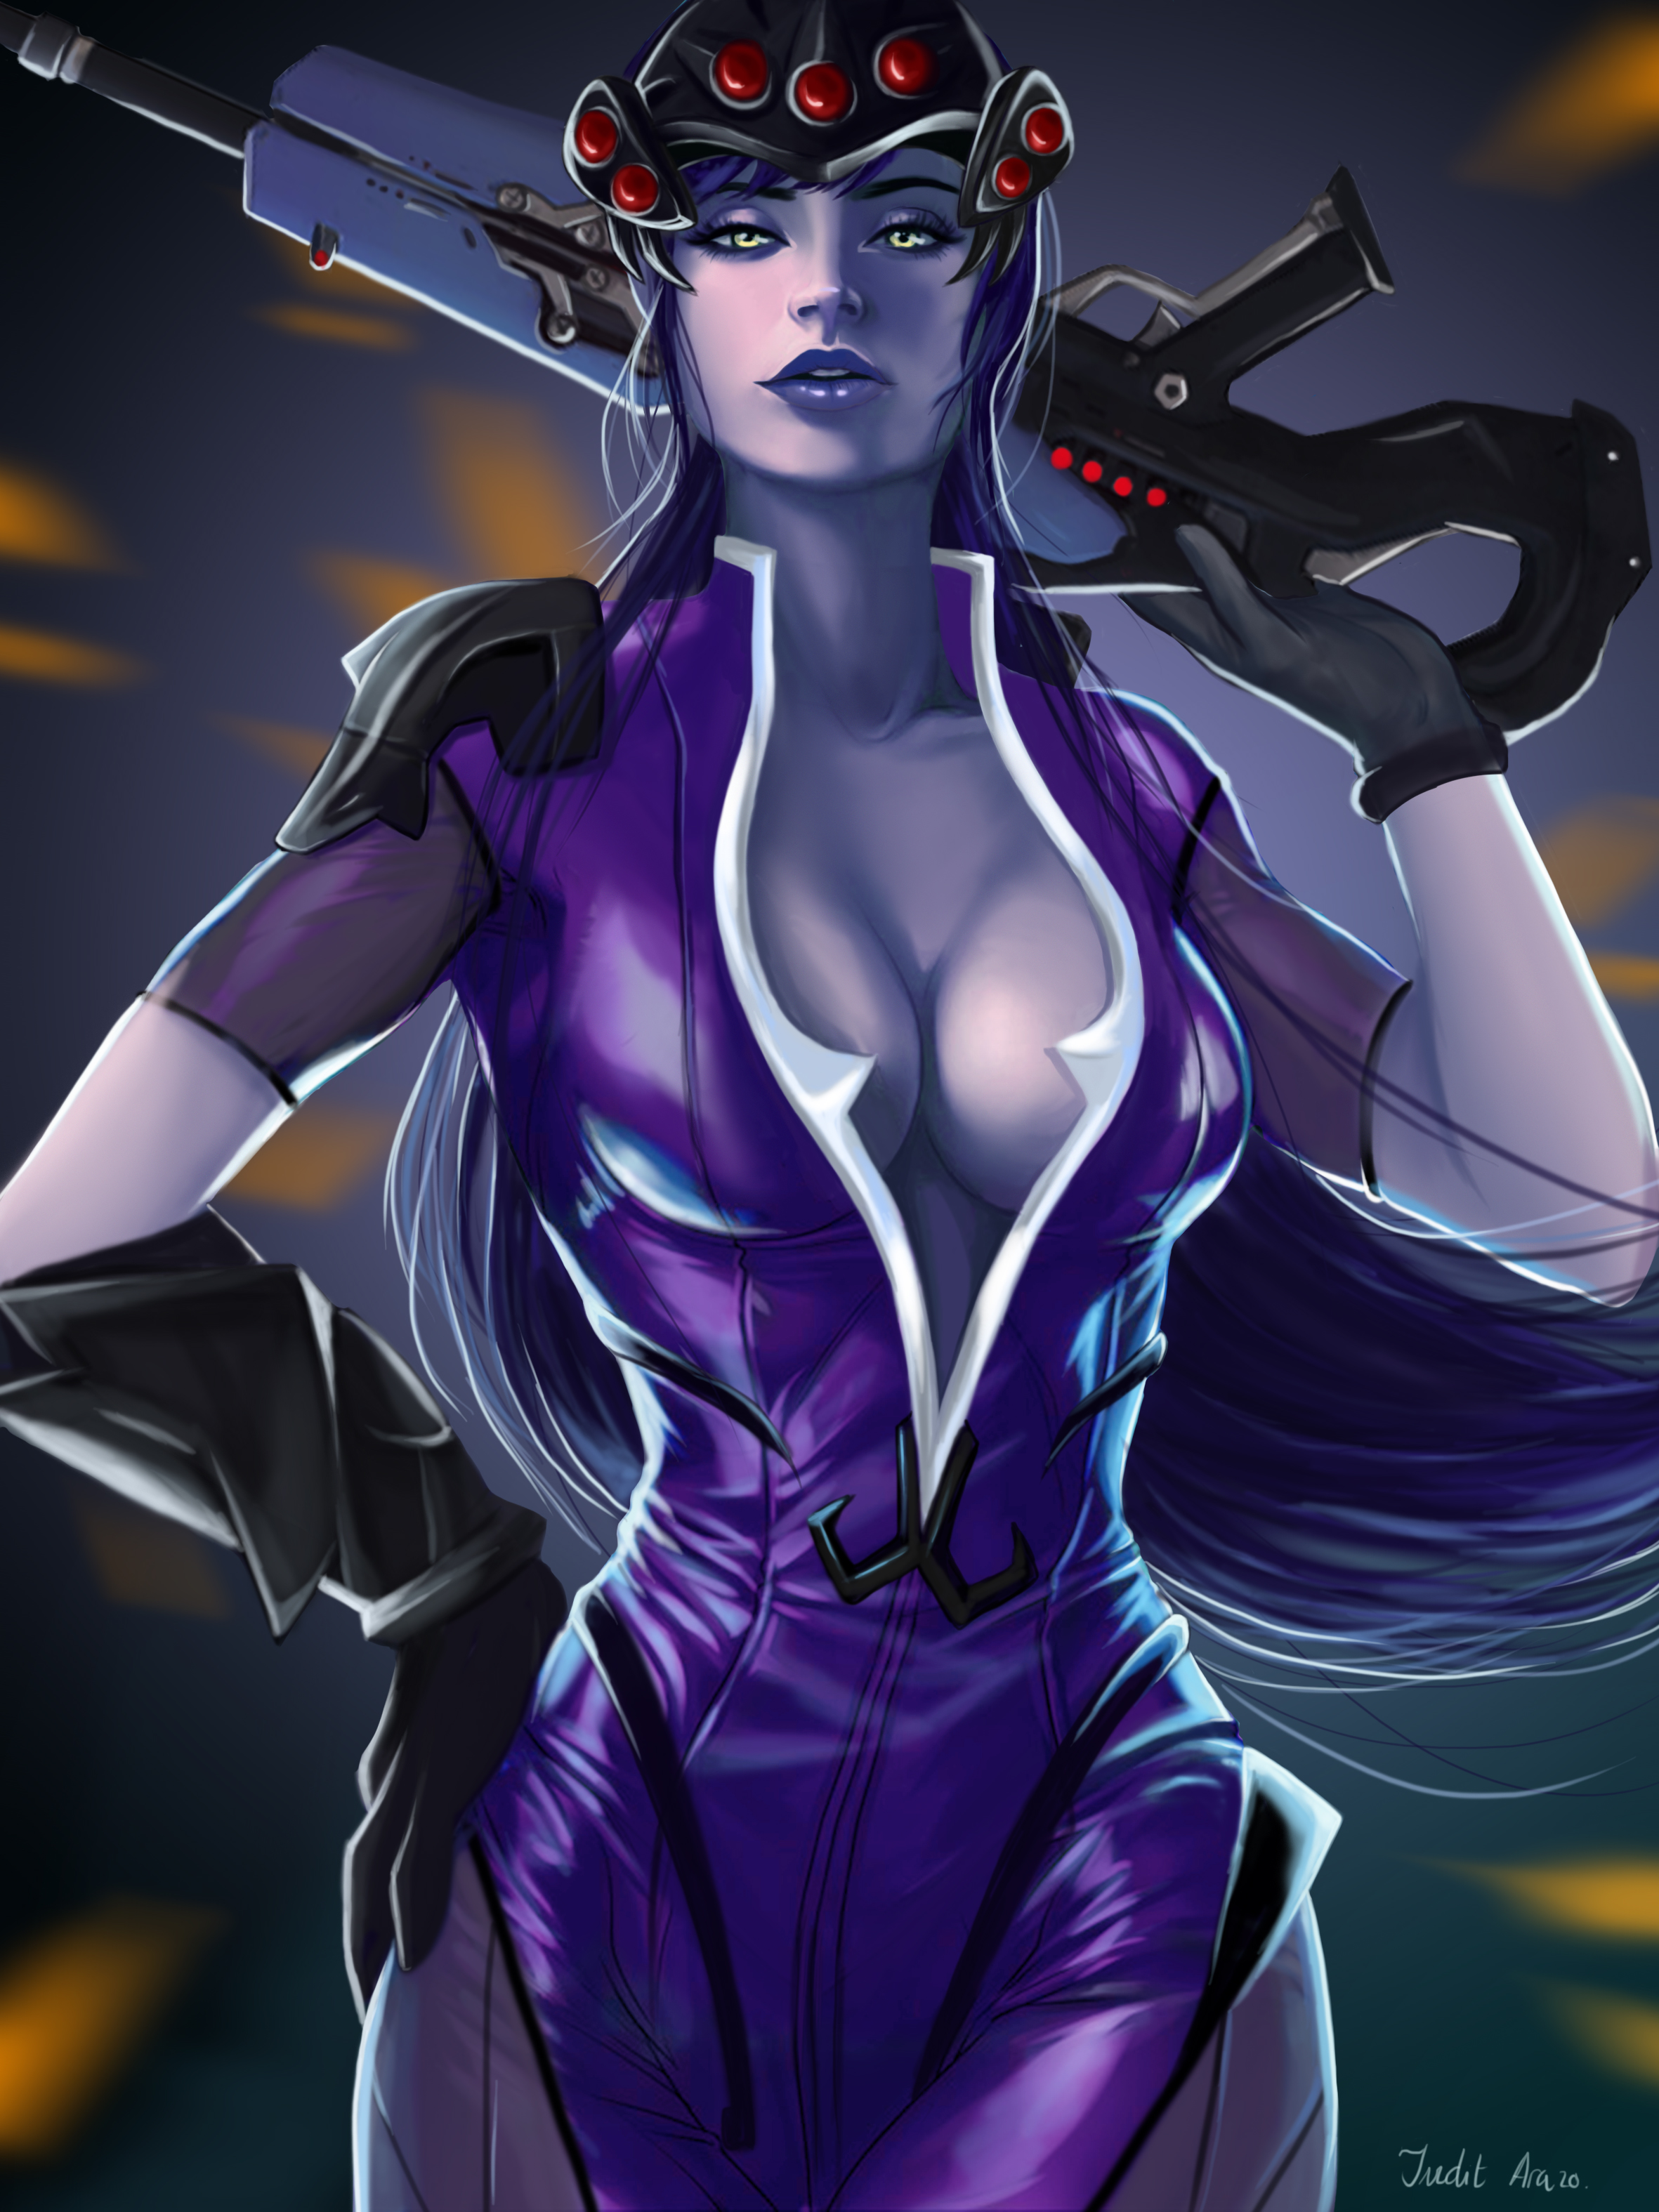 widowmaker_by_juditarazo-da5oz05.jpg